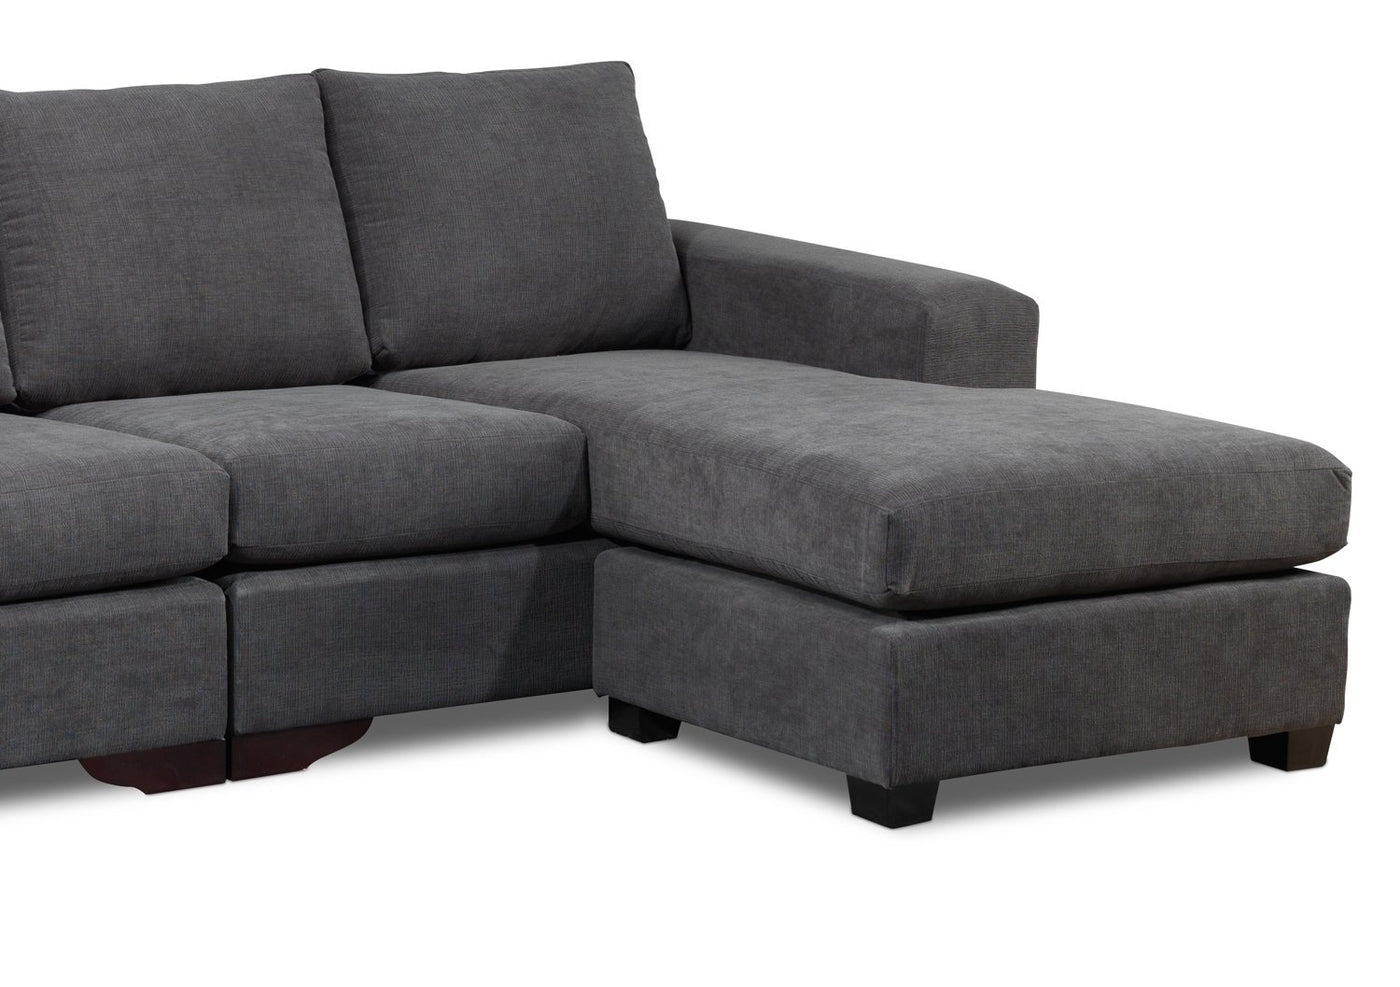 danielle 3 piece sectional instructions